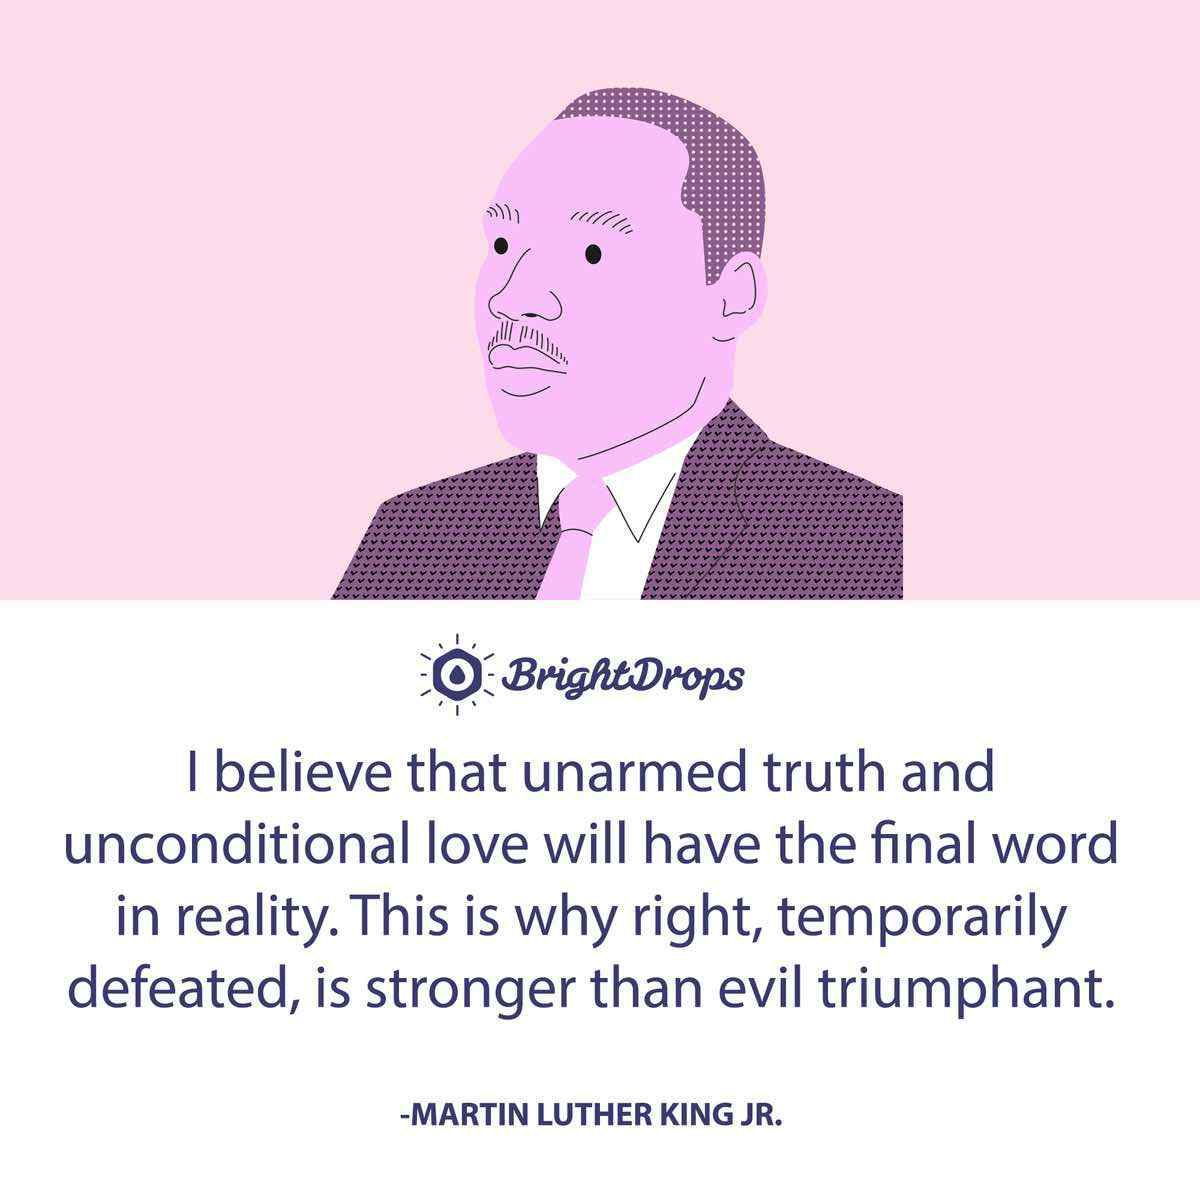 I believe that unarmed truth and unconditional love will have the final word in reality. This is why right, temporarily defeated, is stronger than evil triumphant. -Martin Luther King Jr.